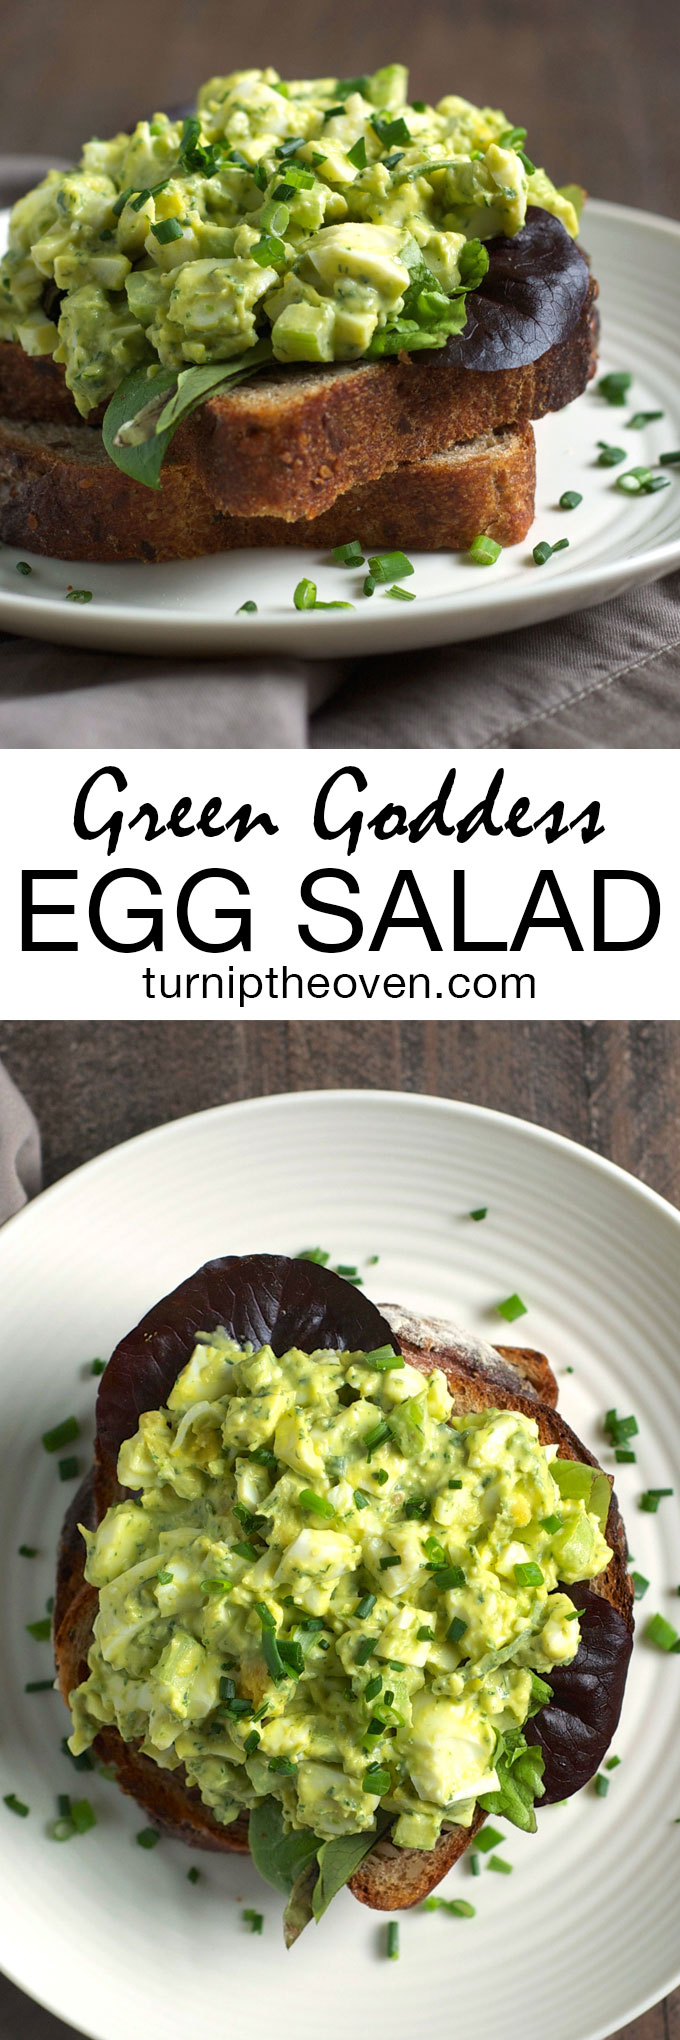 Creamy, savory green goddess dressing is the perfect way to punch up ordinary egg salad! This healthy, real food recipe is the perfect breakfast, brunch, or lunch dish.